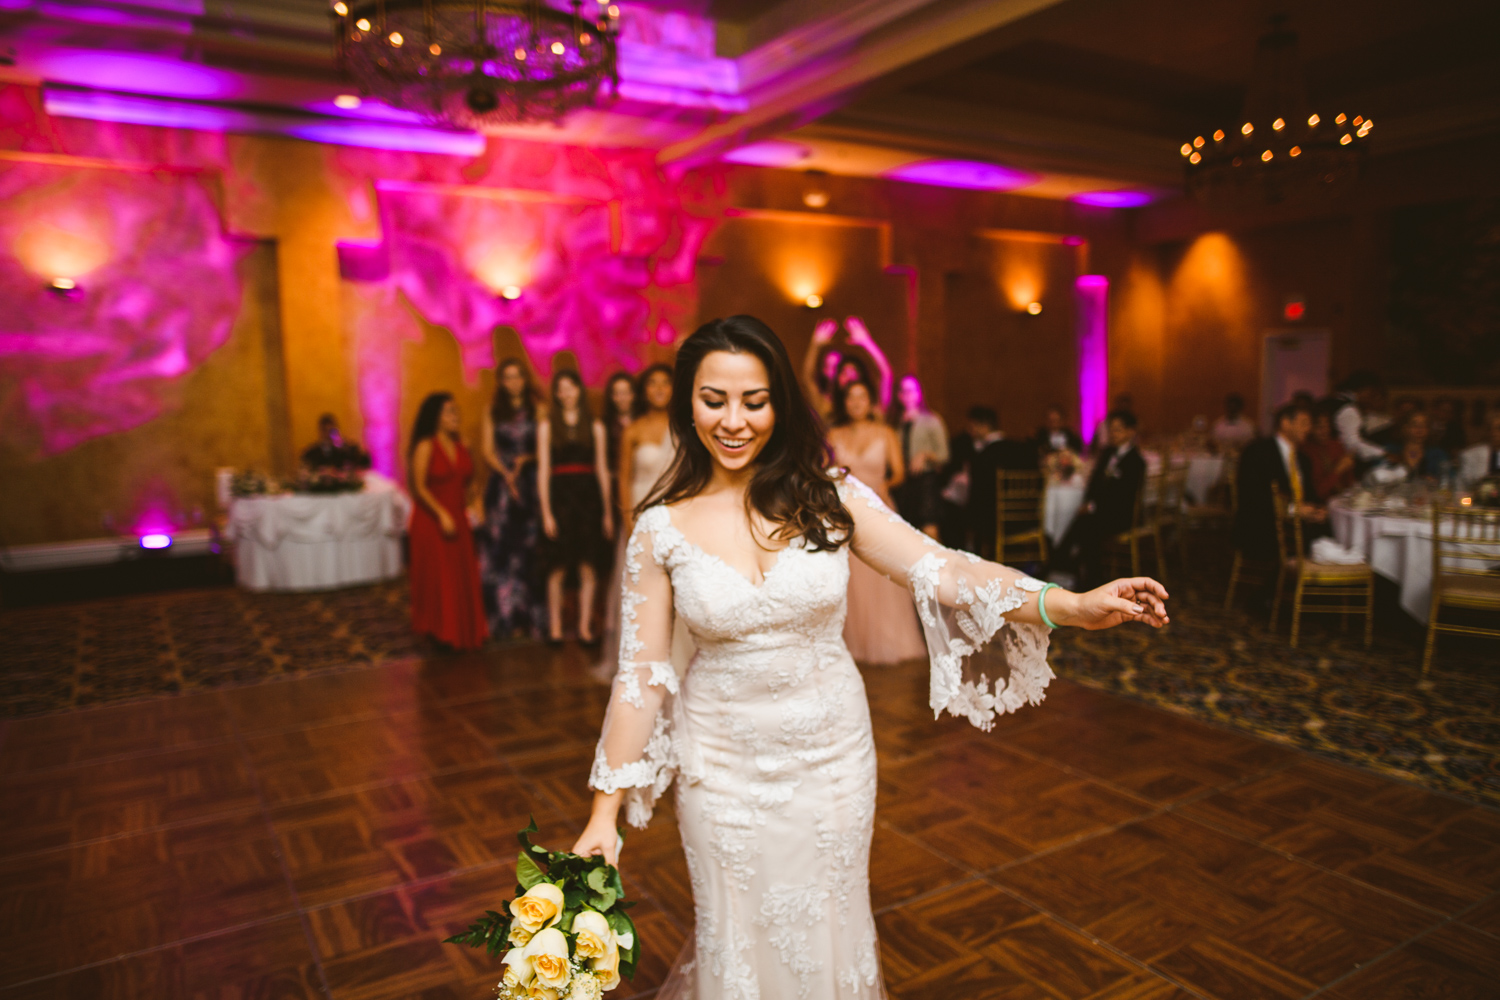 019 bride throws the wedding bouquet.jpg